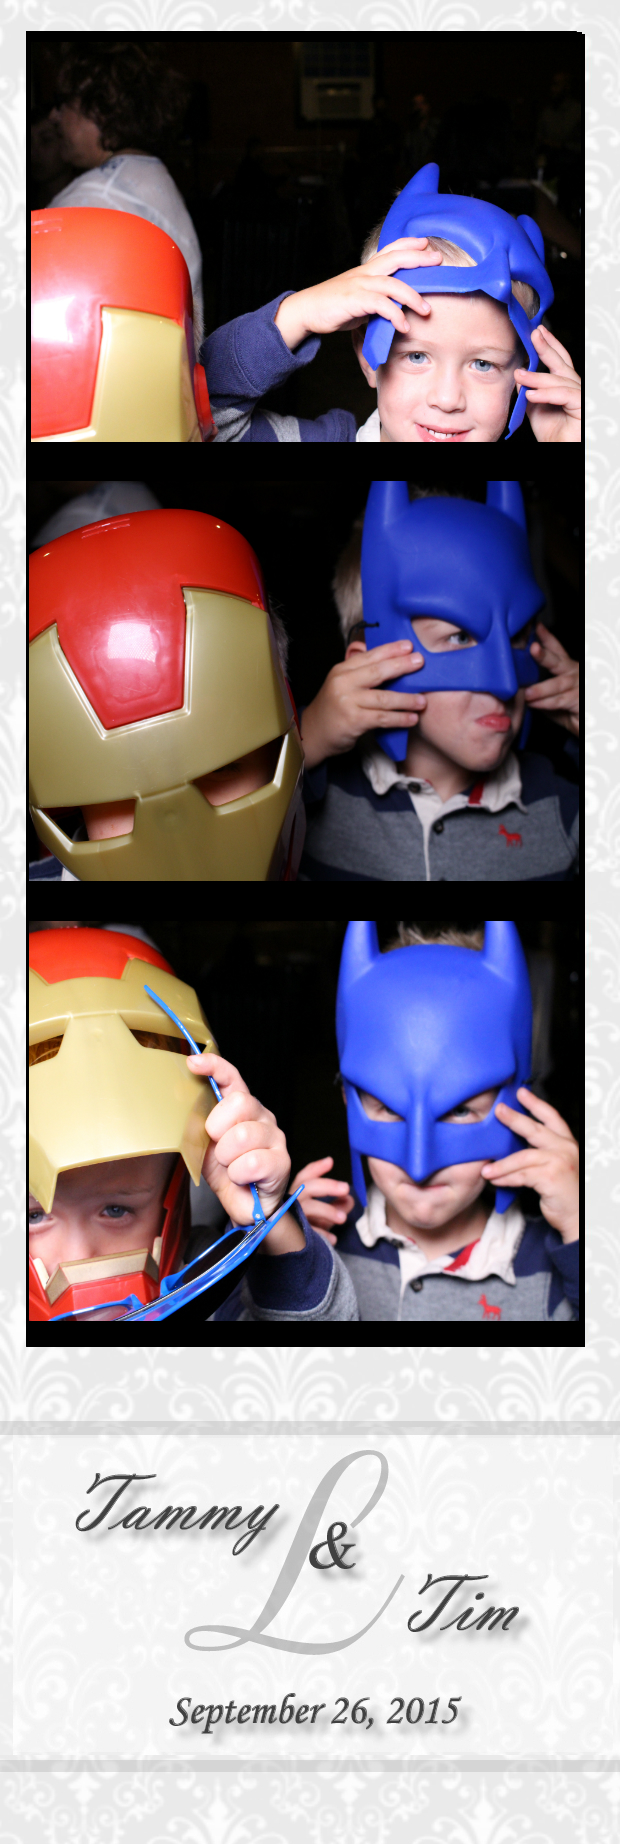 Guest House Events Photo Booth Strips T&T (11).jpg